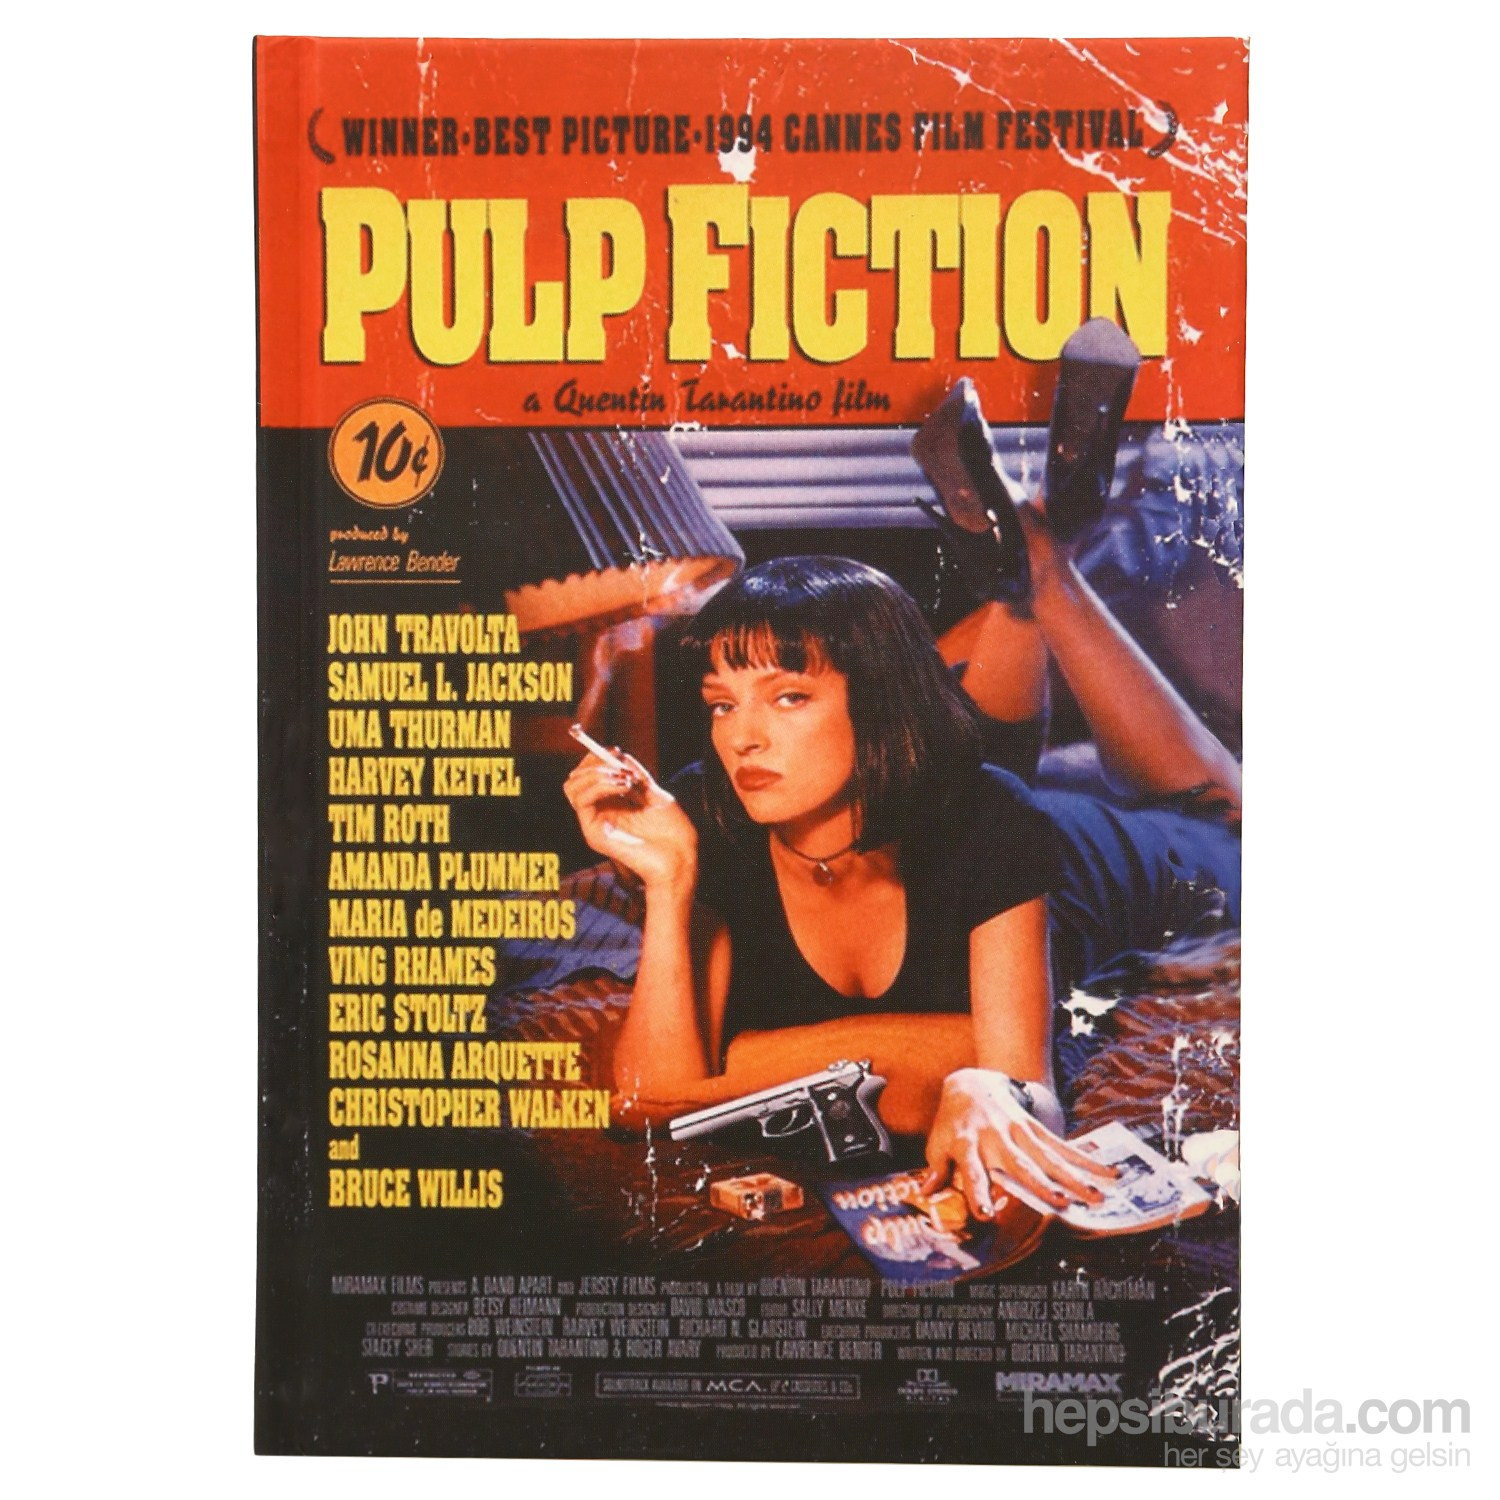 Done 64905-1 Film  Afişleri / Pulp Fiction Defter